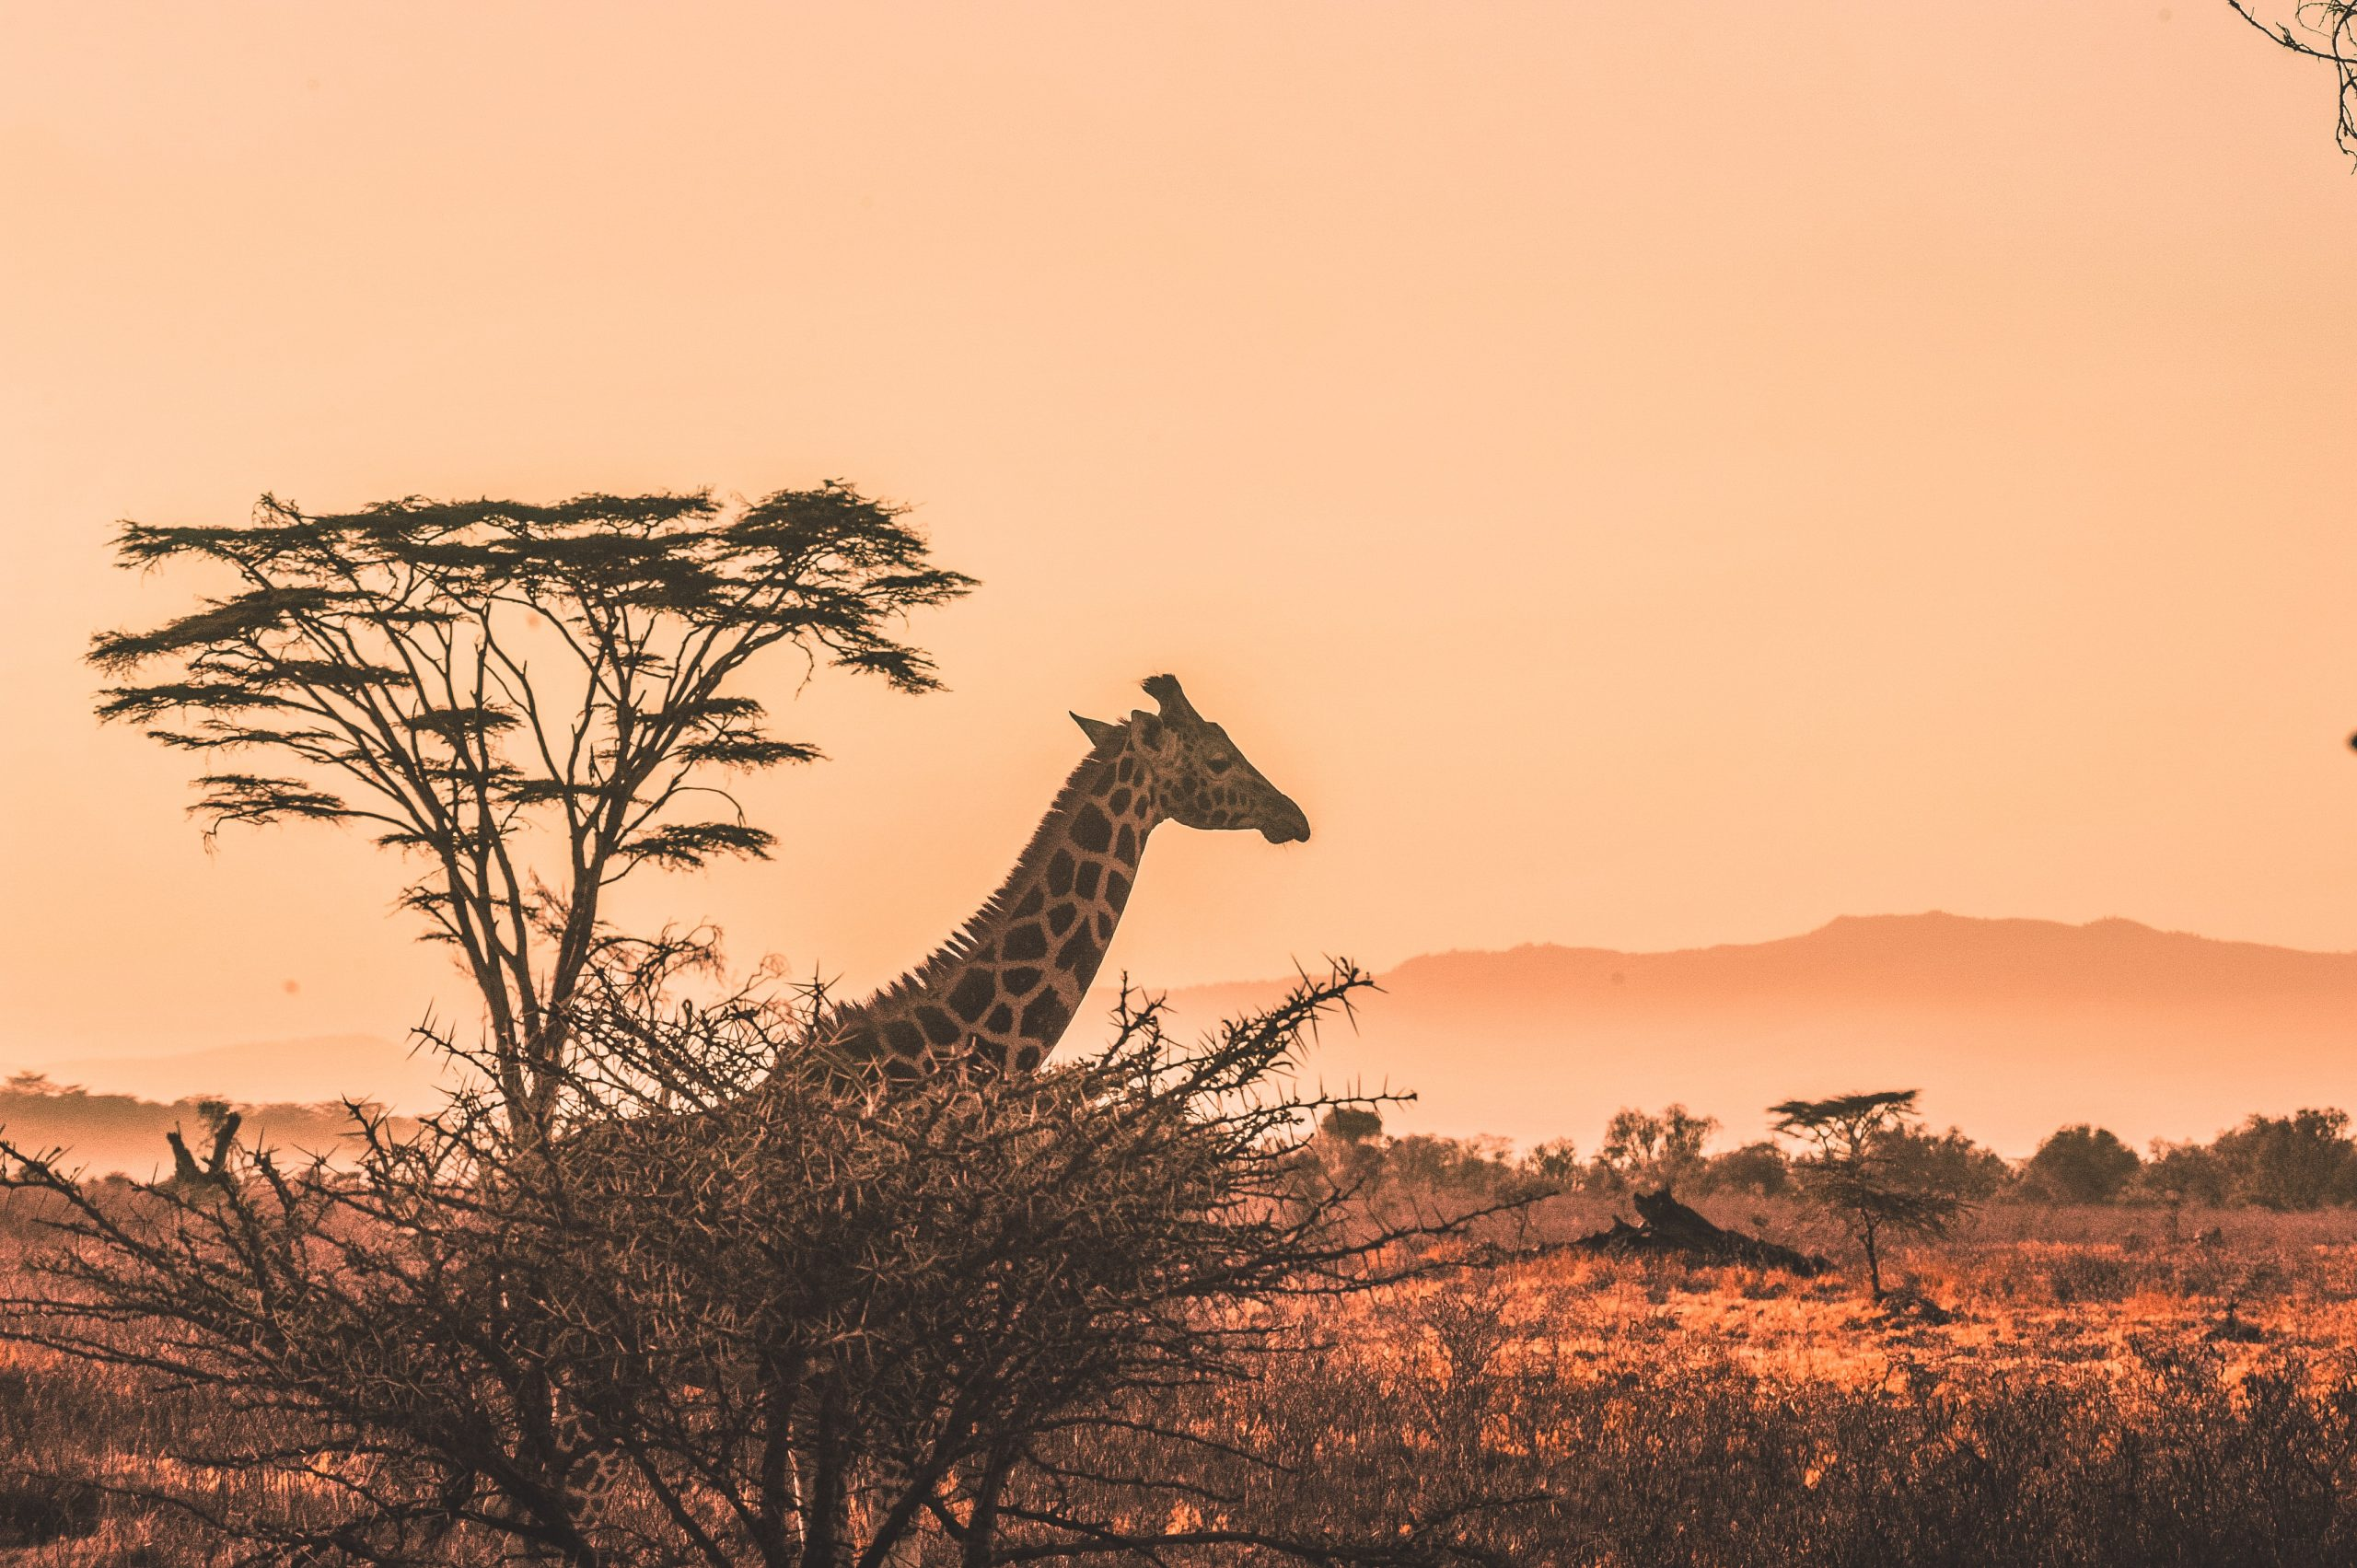 kenya animal safari sighting checklist